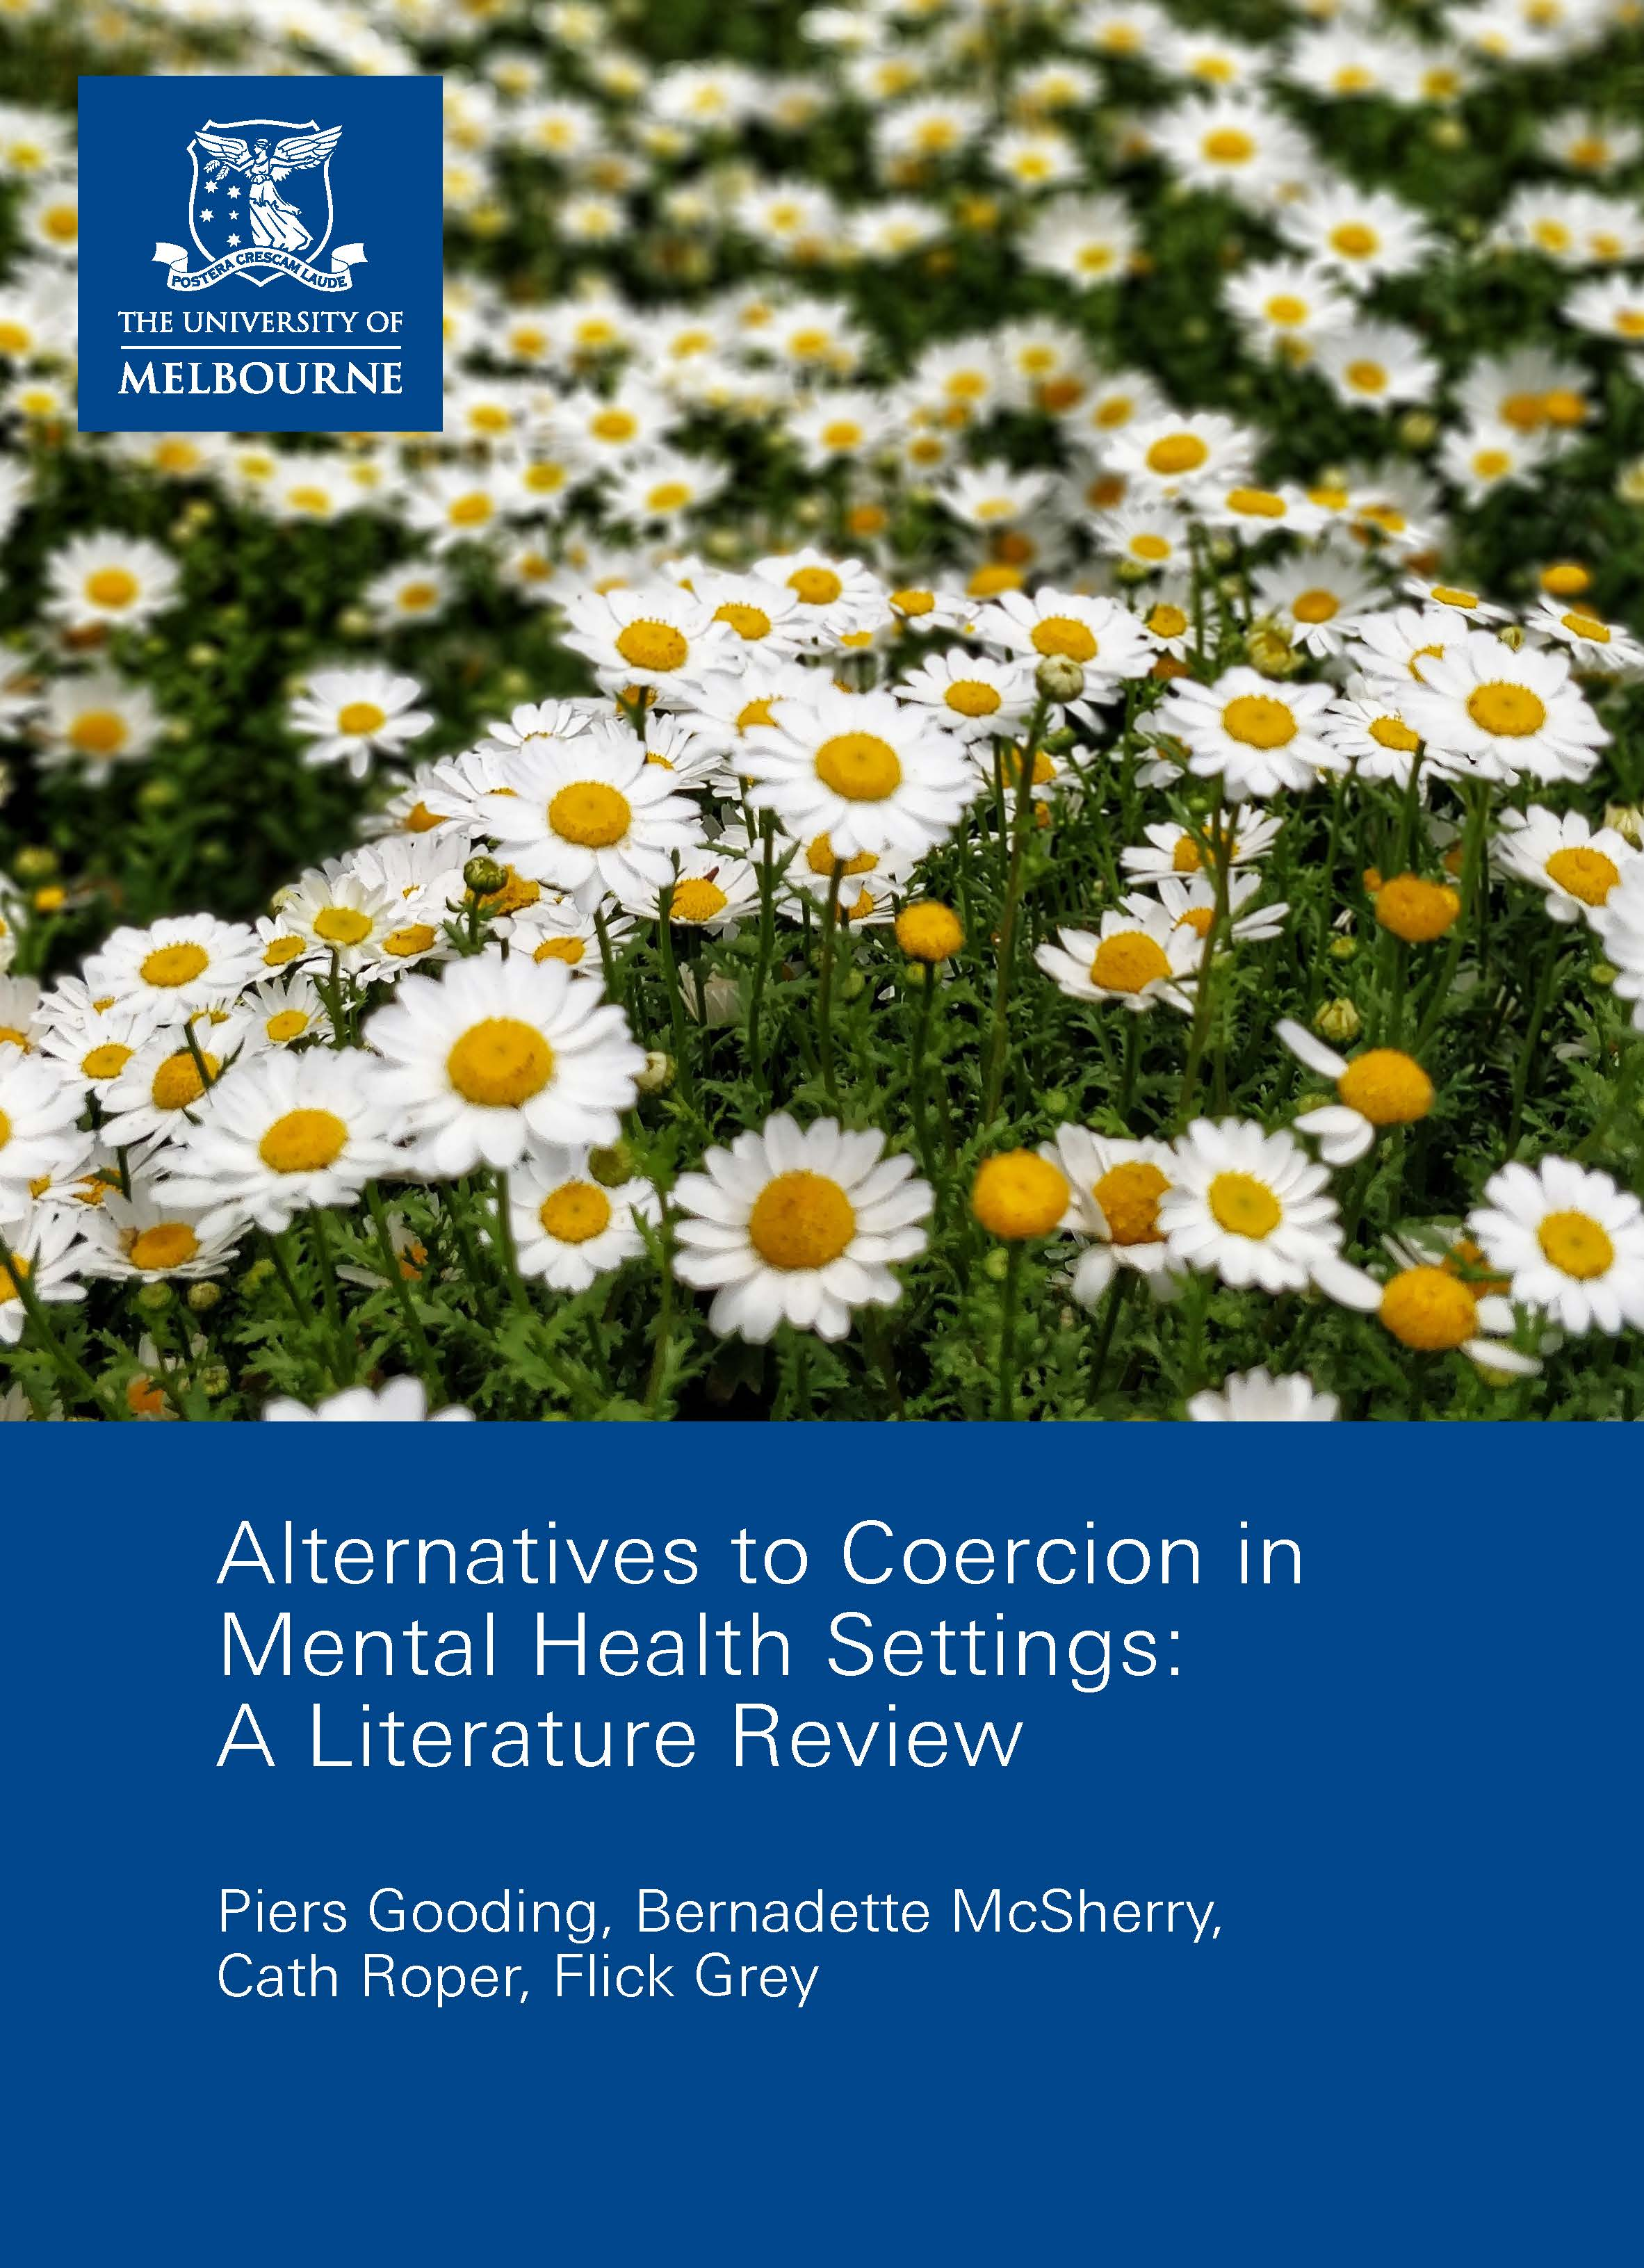 Alternatives to Coercion in Mental Health Settings: A Literature Review